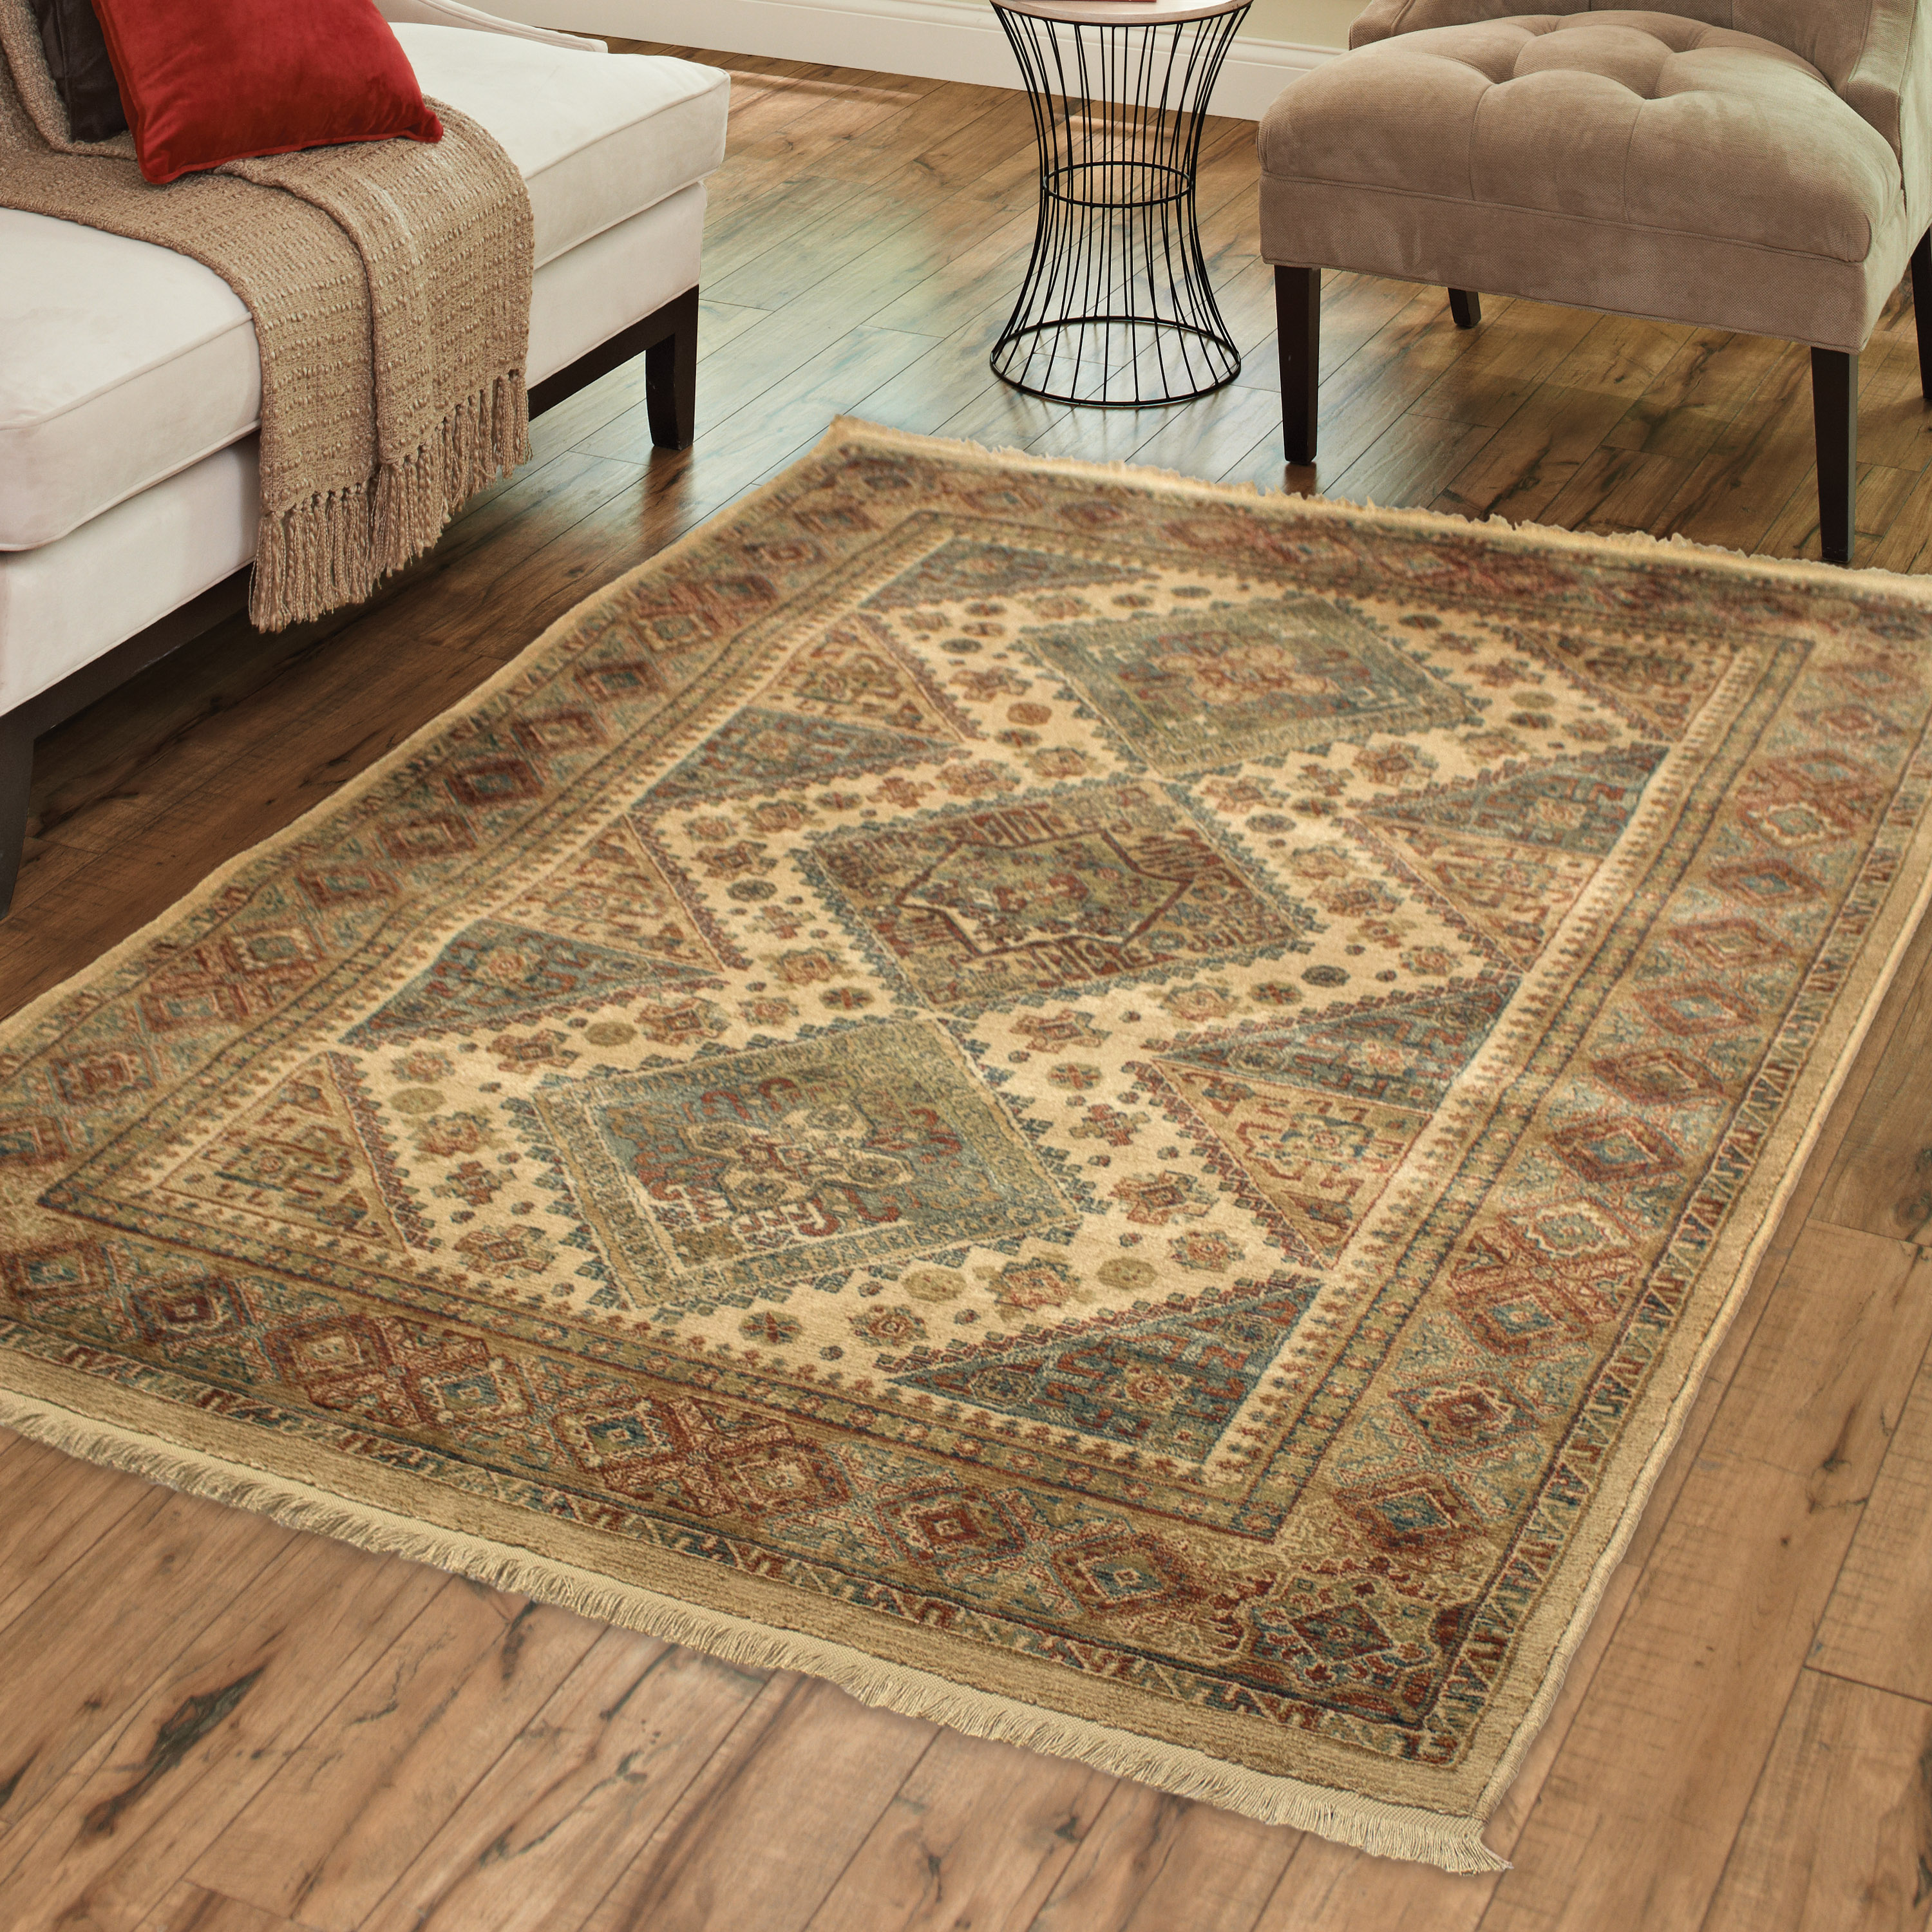 Better Homes and Gardens Fringed Diamonds Area Rug or Runner